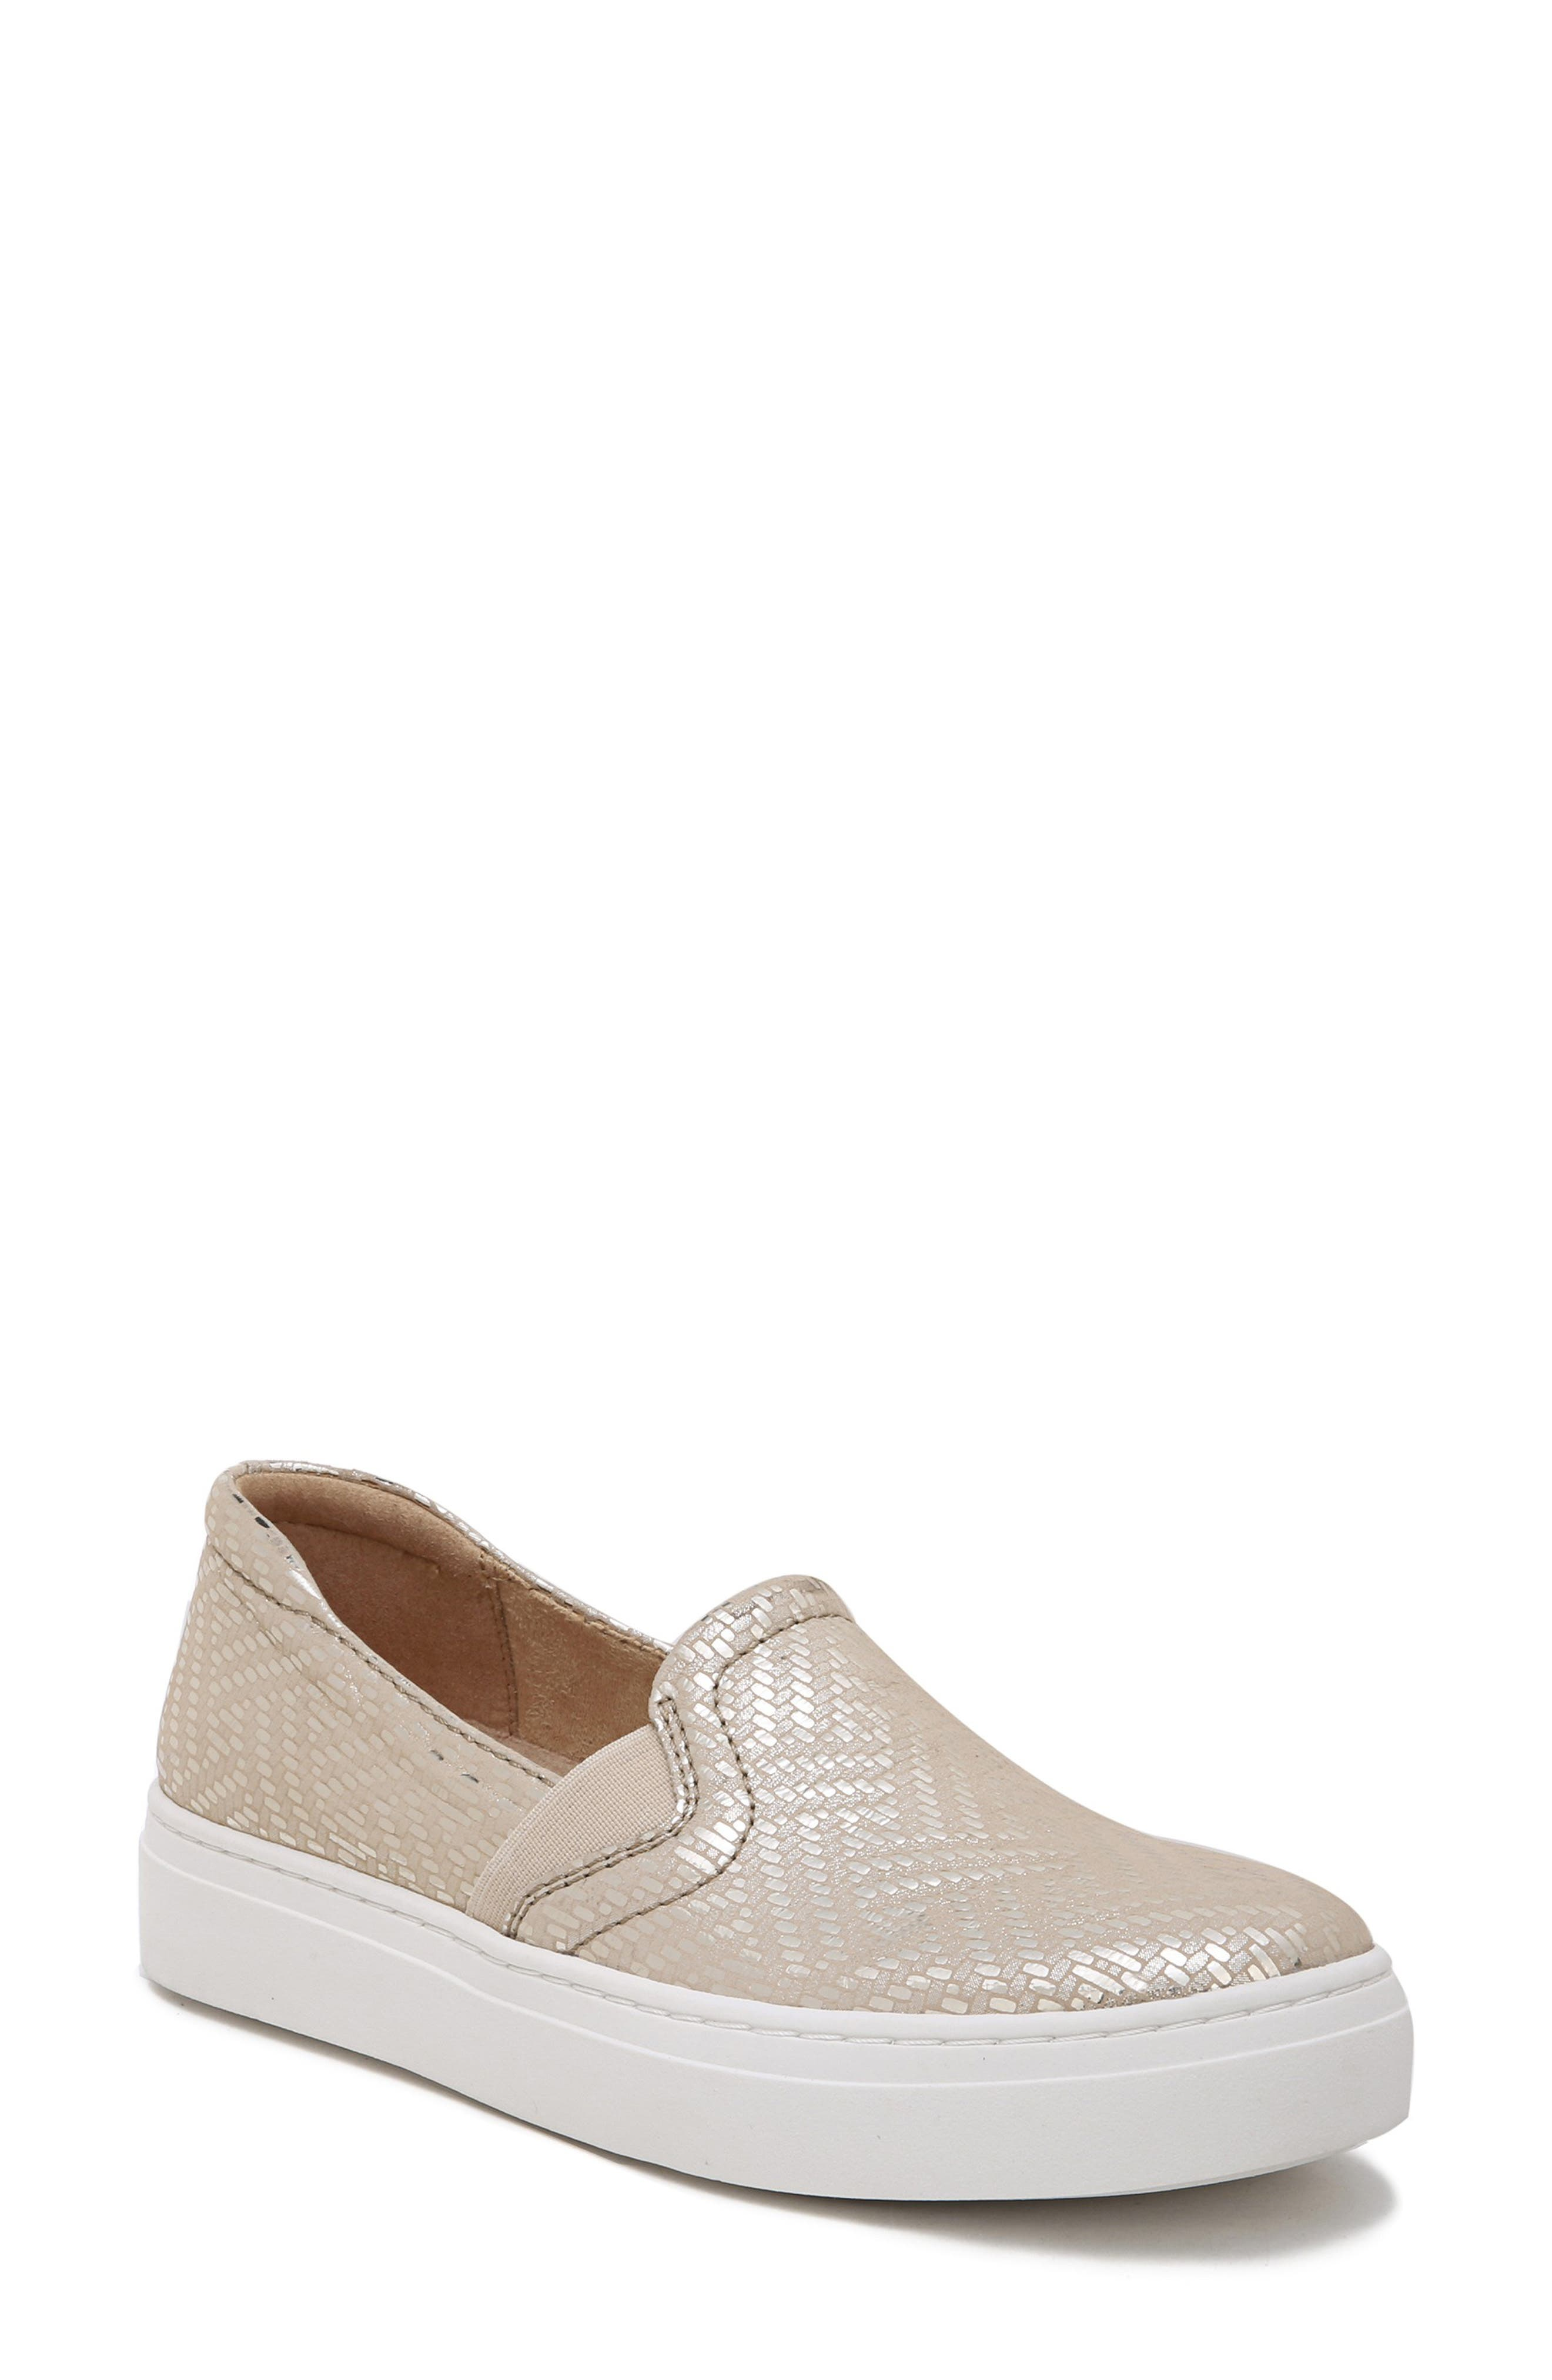 Naturalizer Carly 3 Slip-On Sneaker- Metallic